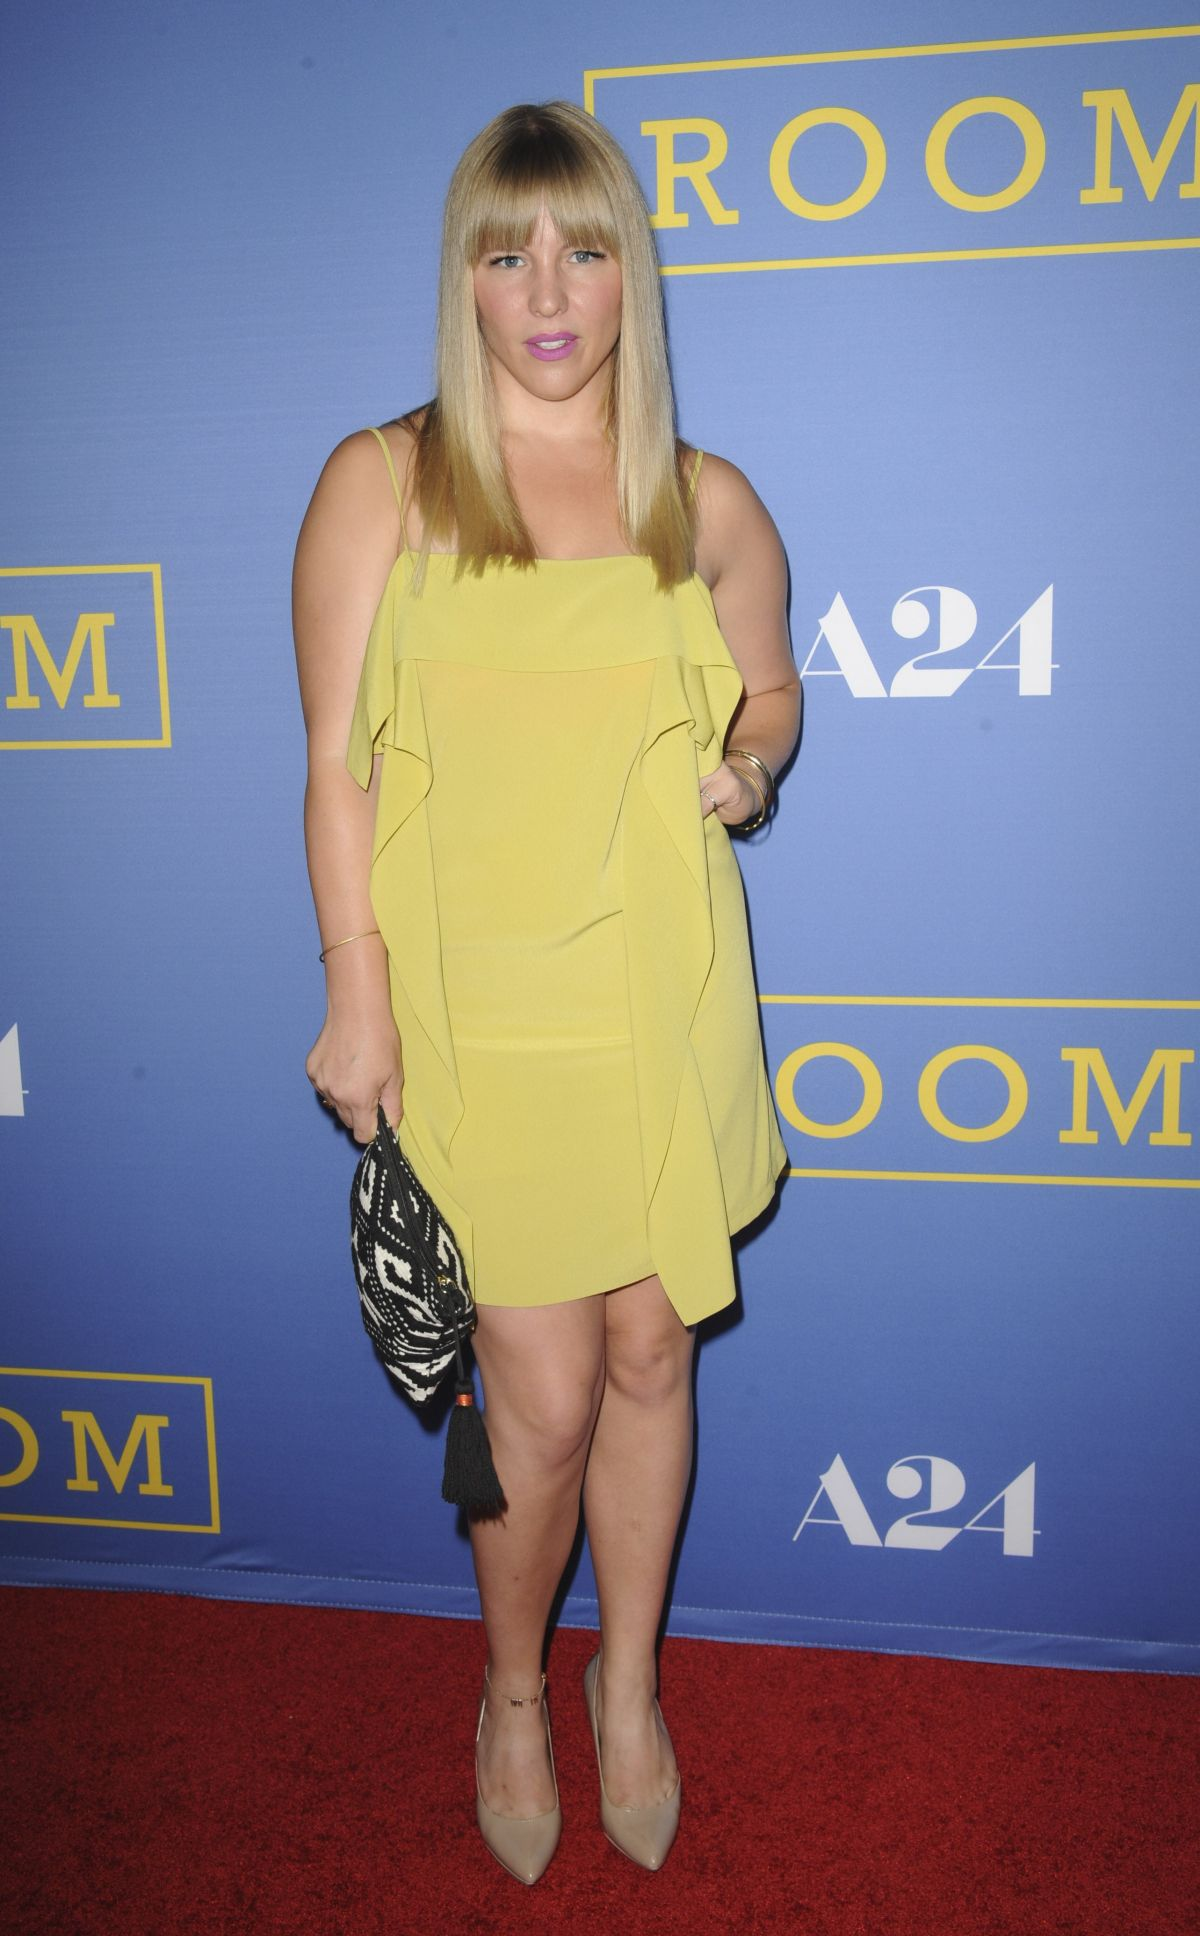 SARA COATES at Room Premiere in West Hollywood 10/13/2015